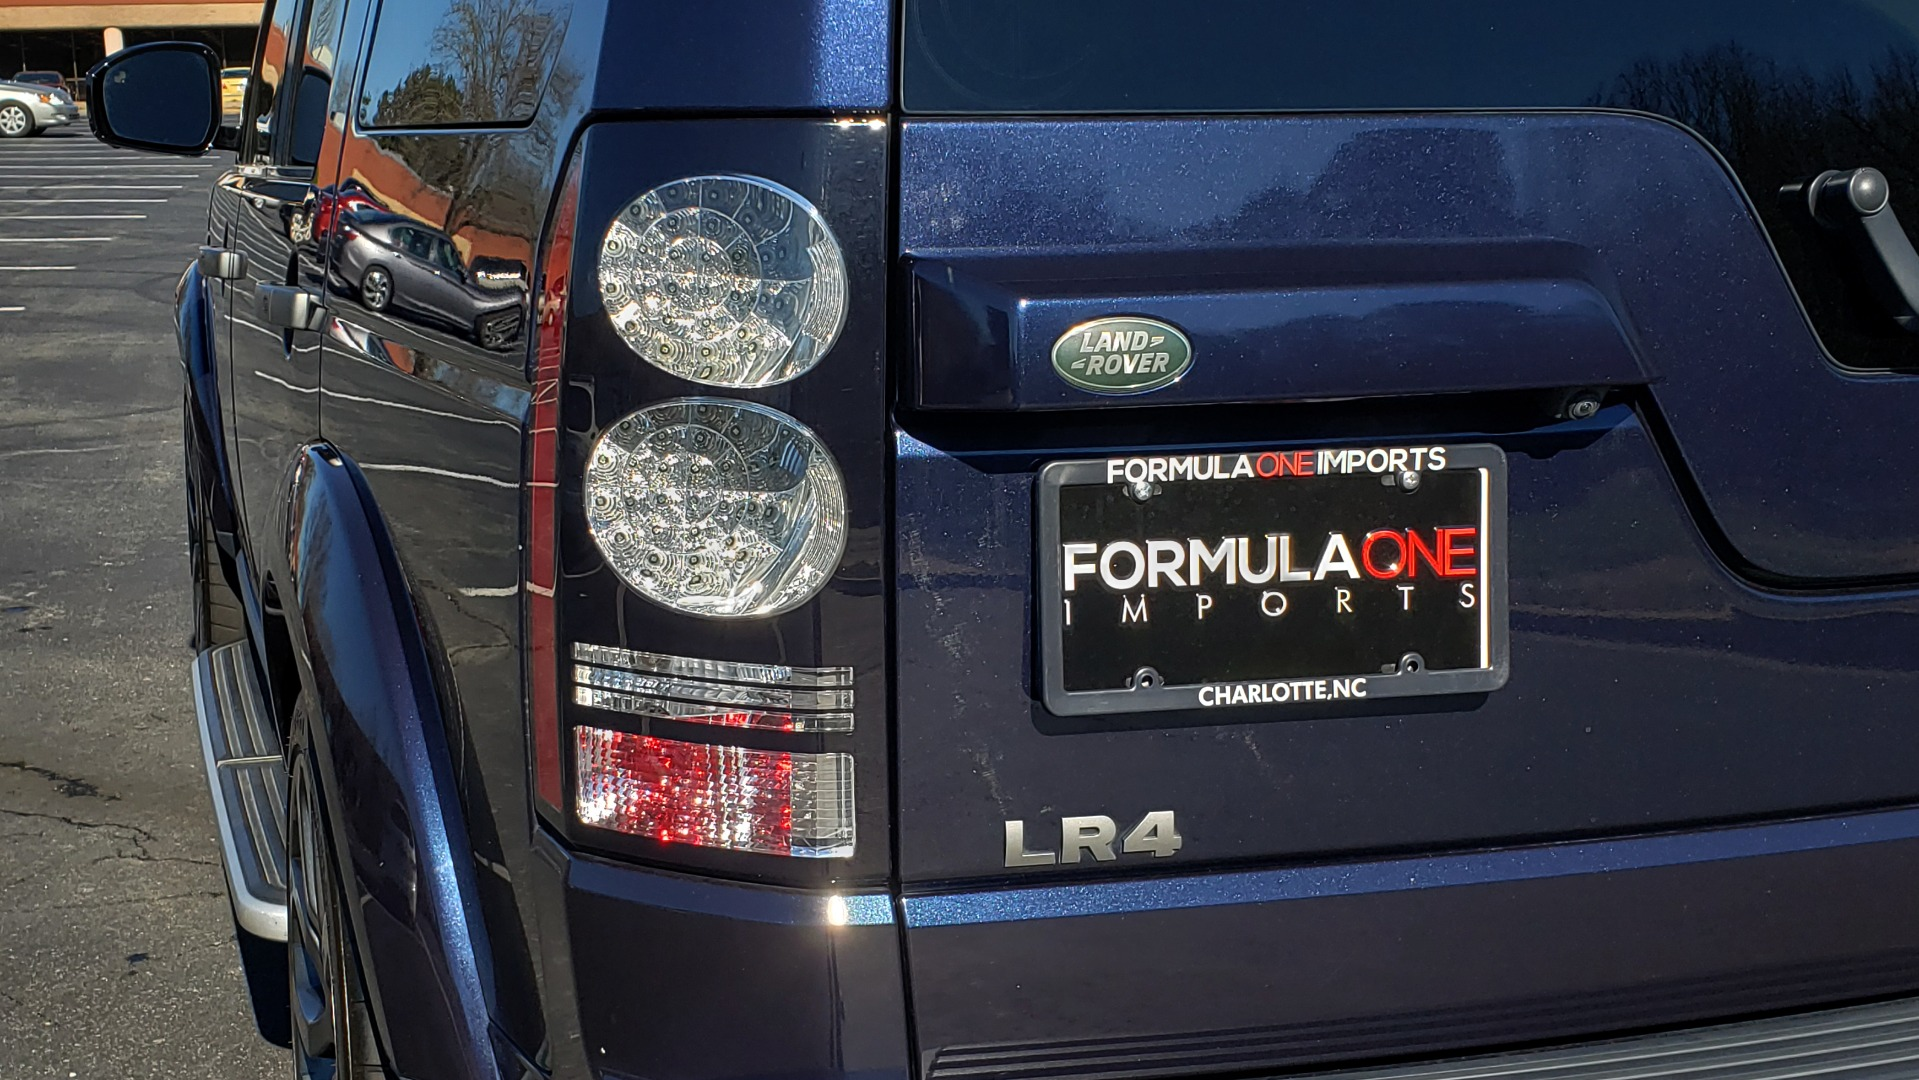 Used 2016 Land Rover LR4 HSE / NAV / VSN ASST / CLIMATE / MERIDIAN / REARVIEW for sale Sold at Formula Imports in Charlotte NC 28227 23